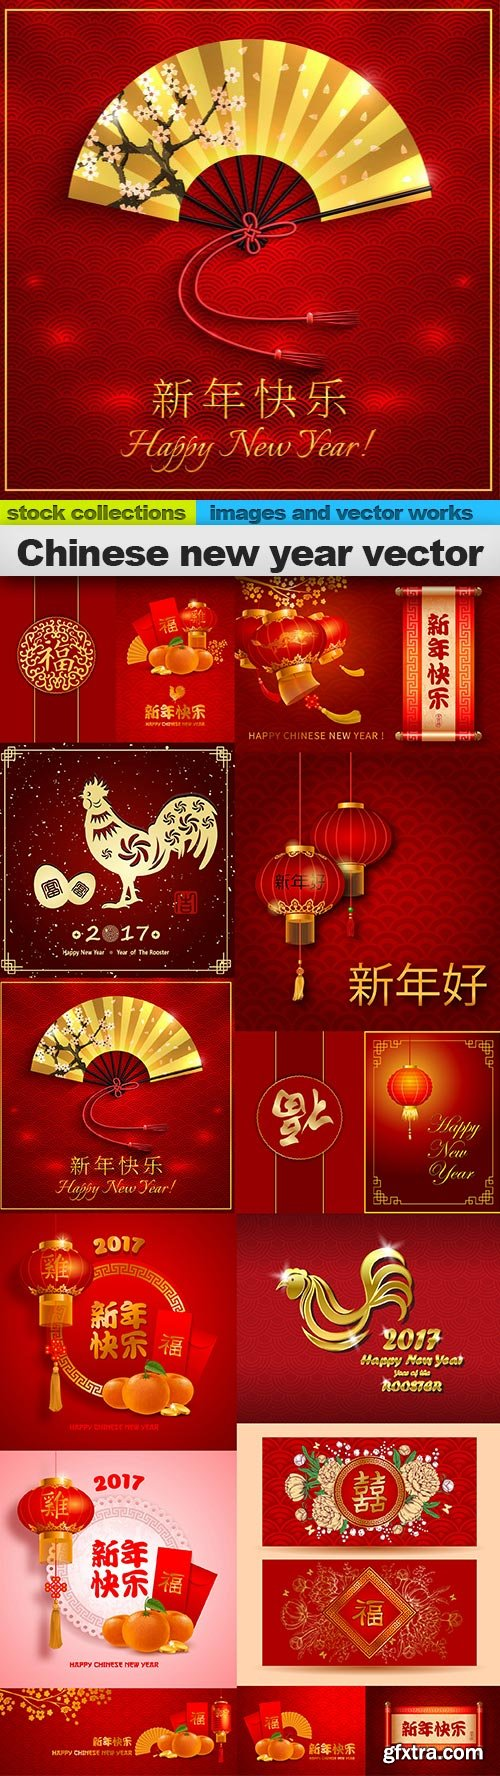 Chinese new year vector, 15 x EPS